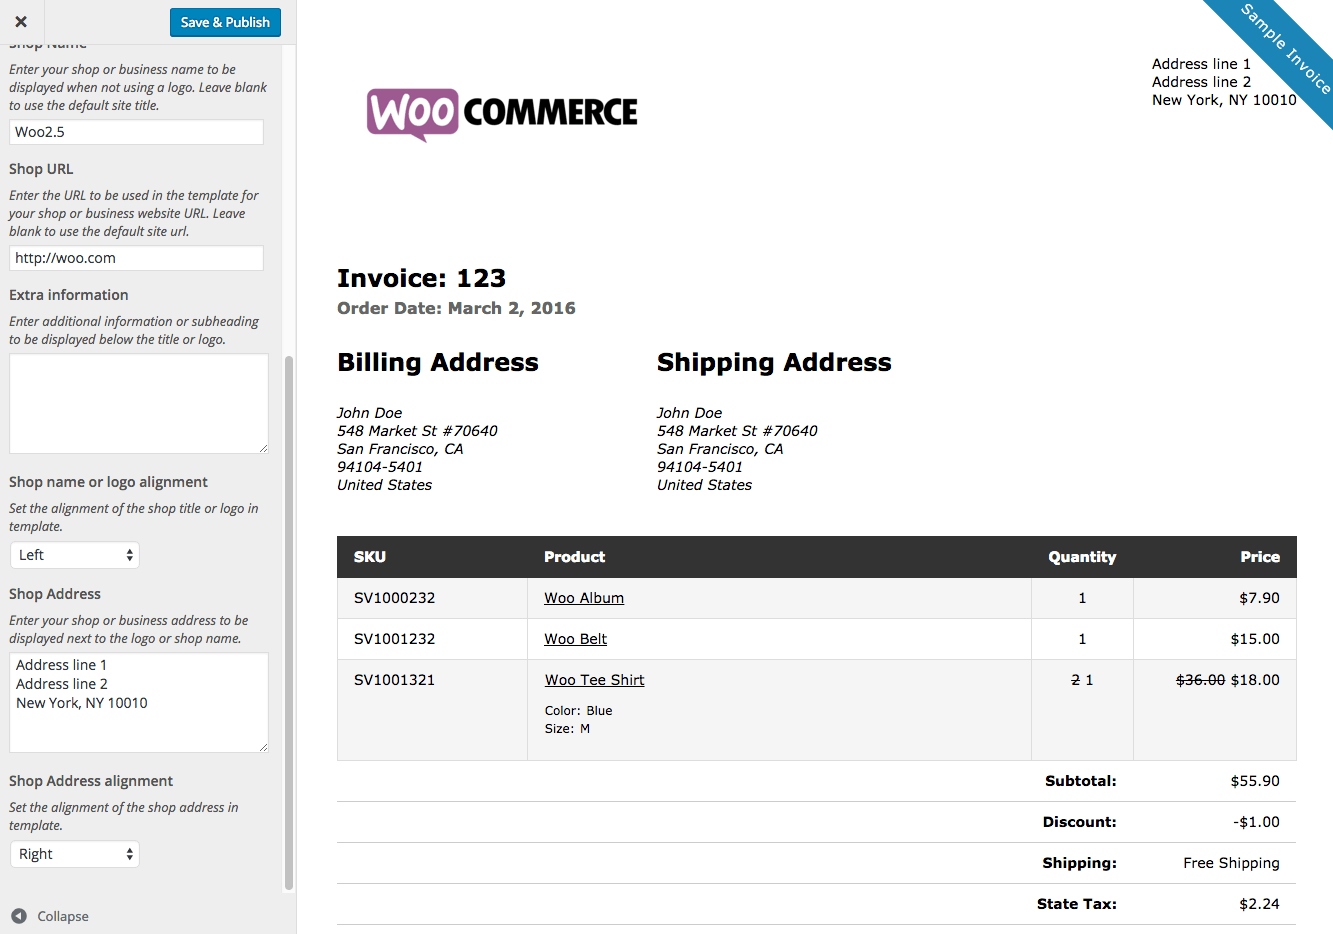 Hucareus  Personable Woocommerce Print Invoices Amp Packing Lists  Woocommerce Docs With Heavenly Woocommerce Print Invoices  Packing Lists Customizer With Cool Simple Invoicing Program Also Format Of Proforma Invoice In Addition Factoring Of Invoices And Invoice Sale As Well As Invoice Term Additionally How To Make Invoices In Word From Docswoocommercecom With Hucareus  Heavenly Woocommerce Print Invoices Amp Packing Lists  Woocommerce Docs With Cool Woocommerce Print Invoices  Packing Lists Customizer And Personable Simple Invoicing Program Also Format Of Proforma Invoice In Addition Factoring Of Invoices From Docswoocommercecom